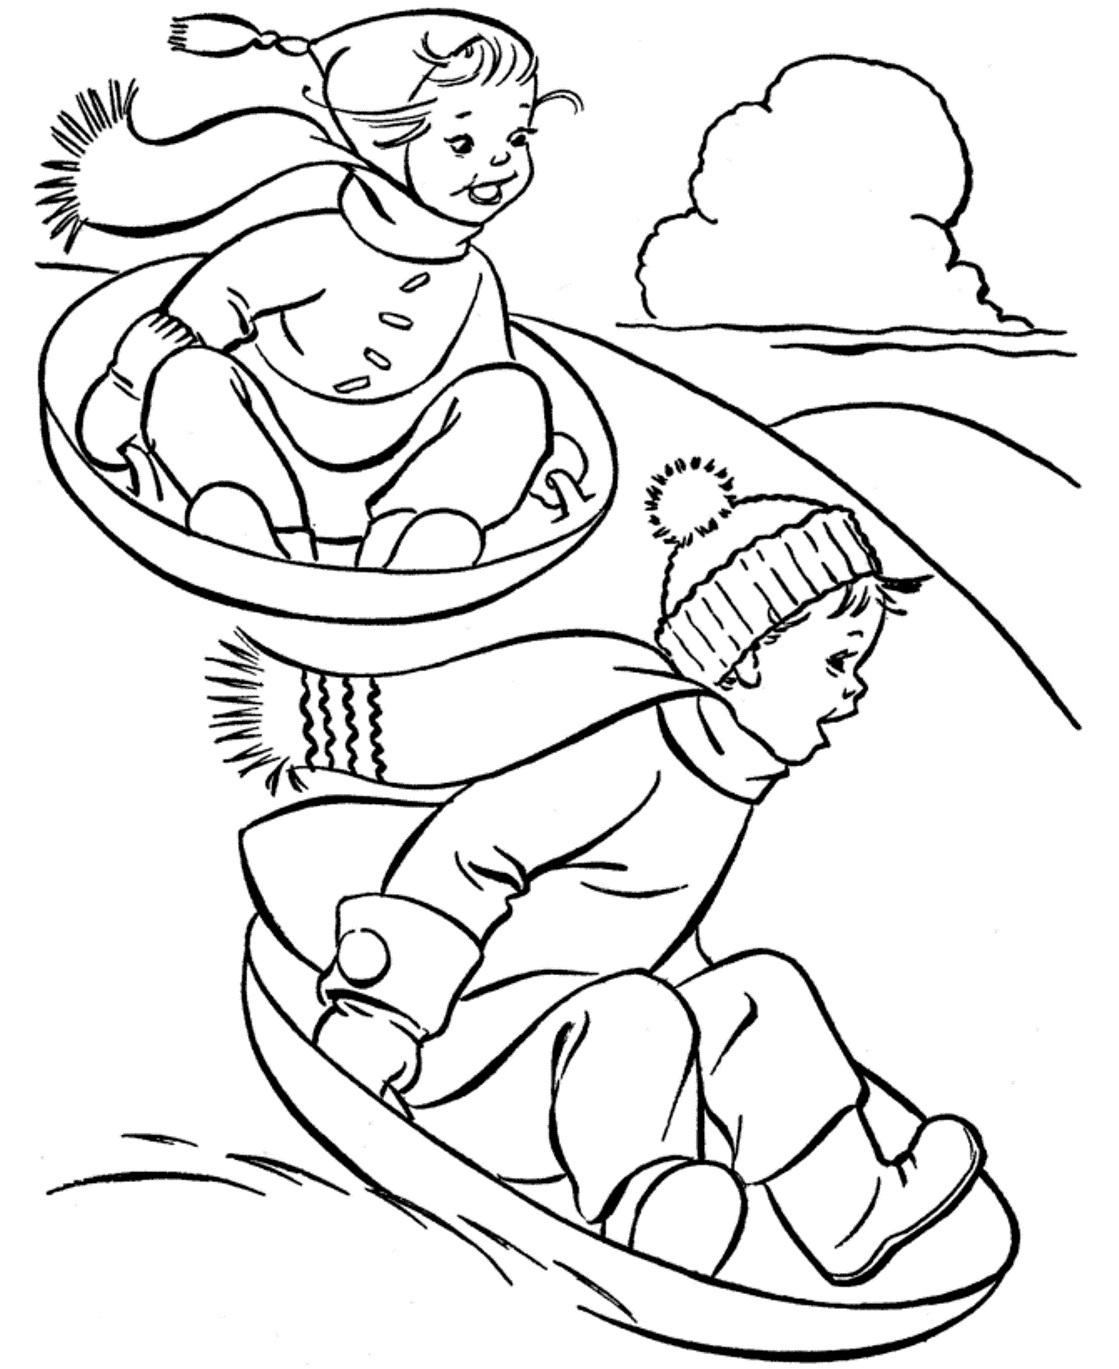 Coloring pages kids winter - Winter Coloring Page